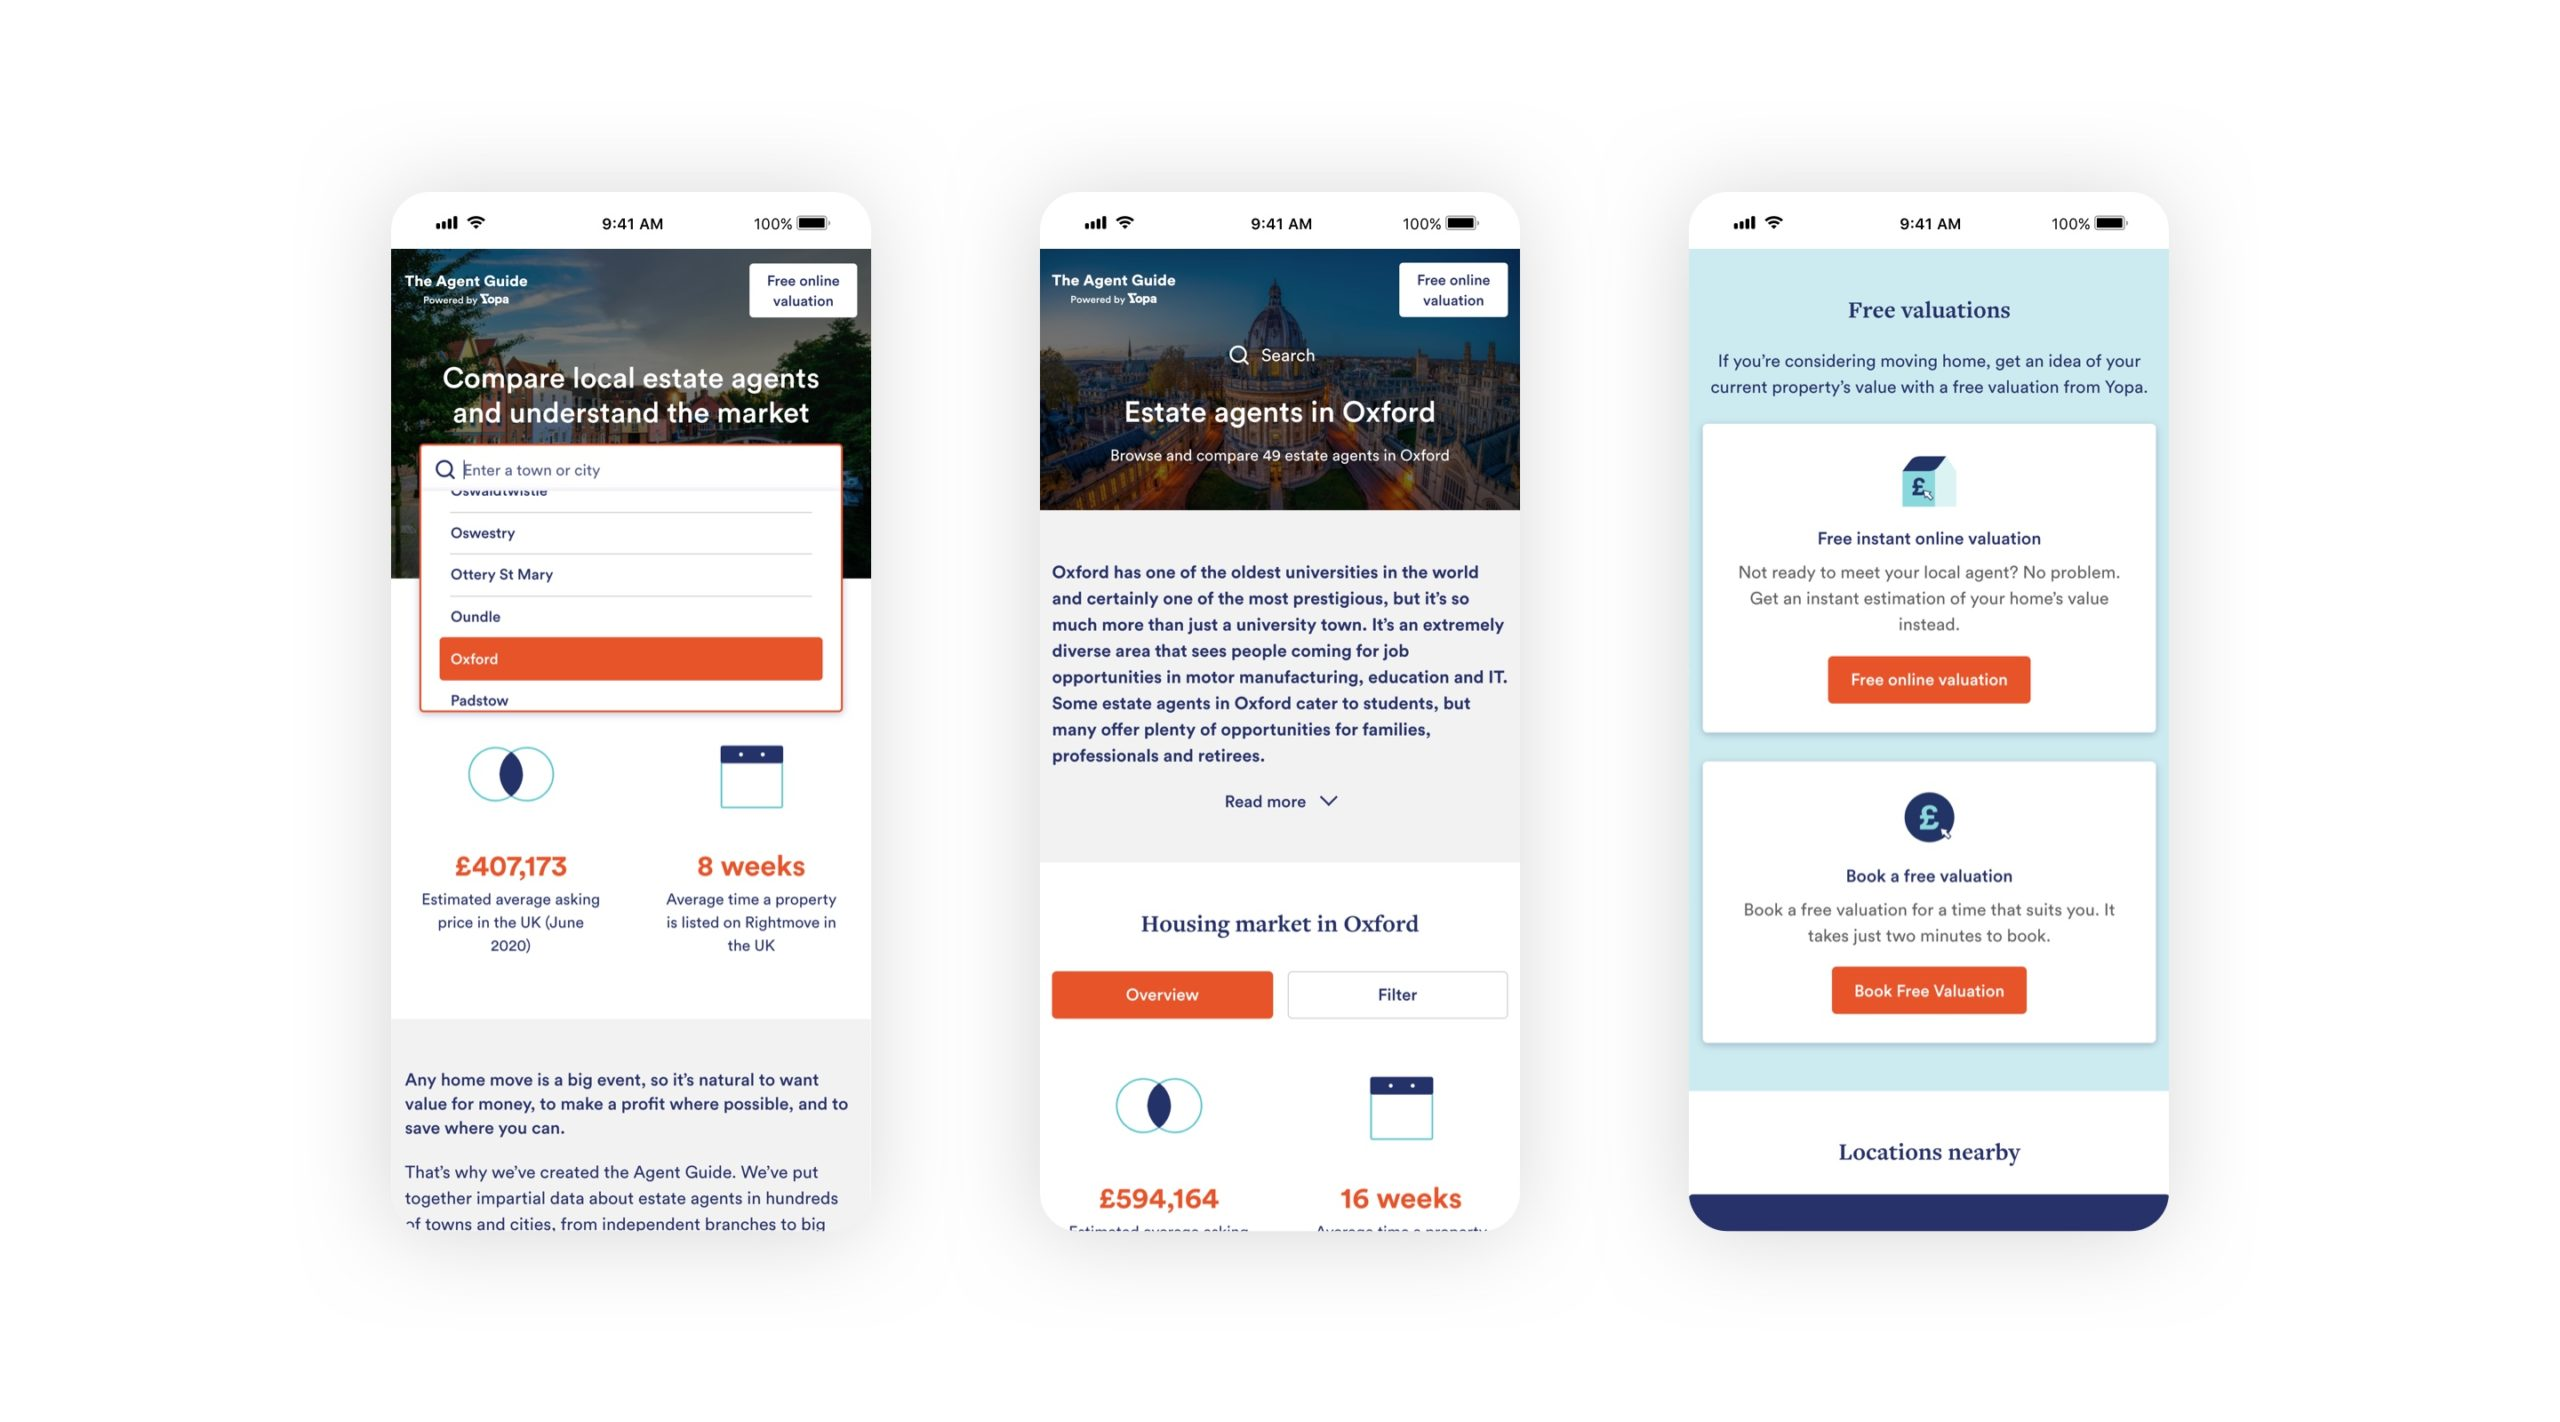 Image showing the different pages of The Agent Guide website on 3 mobile phone screens